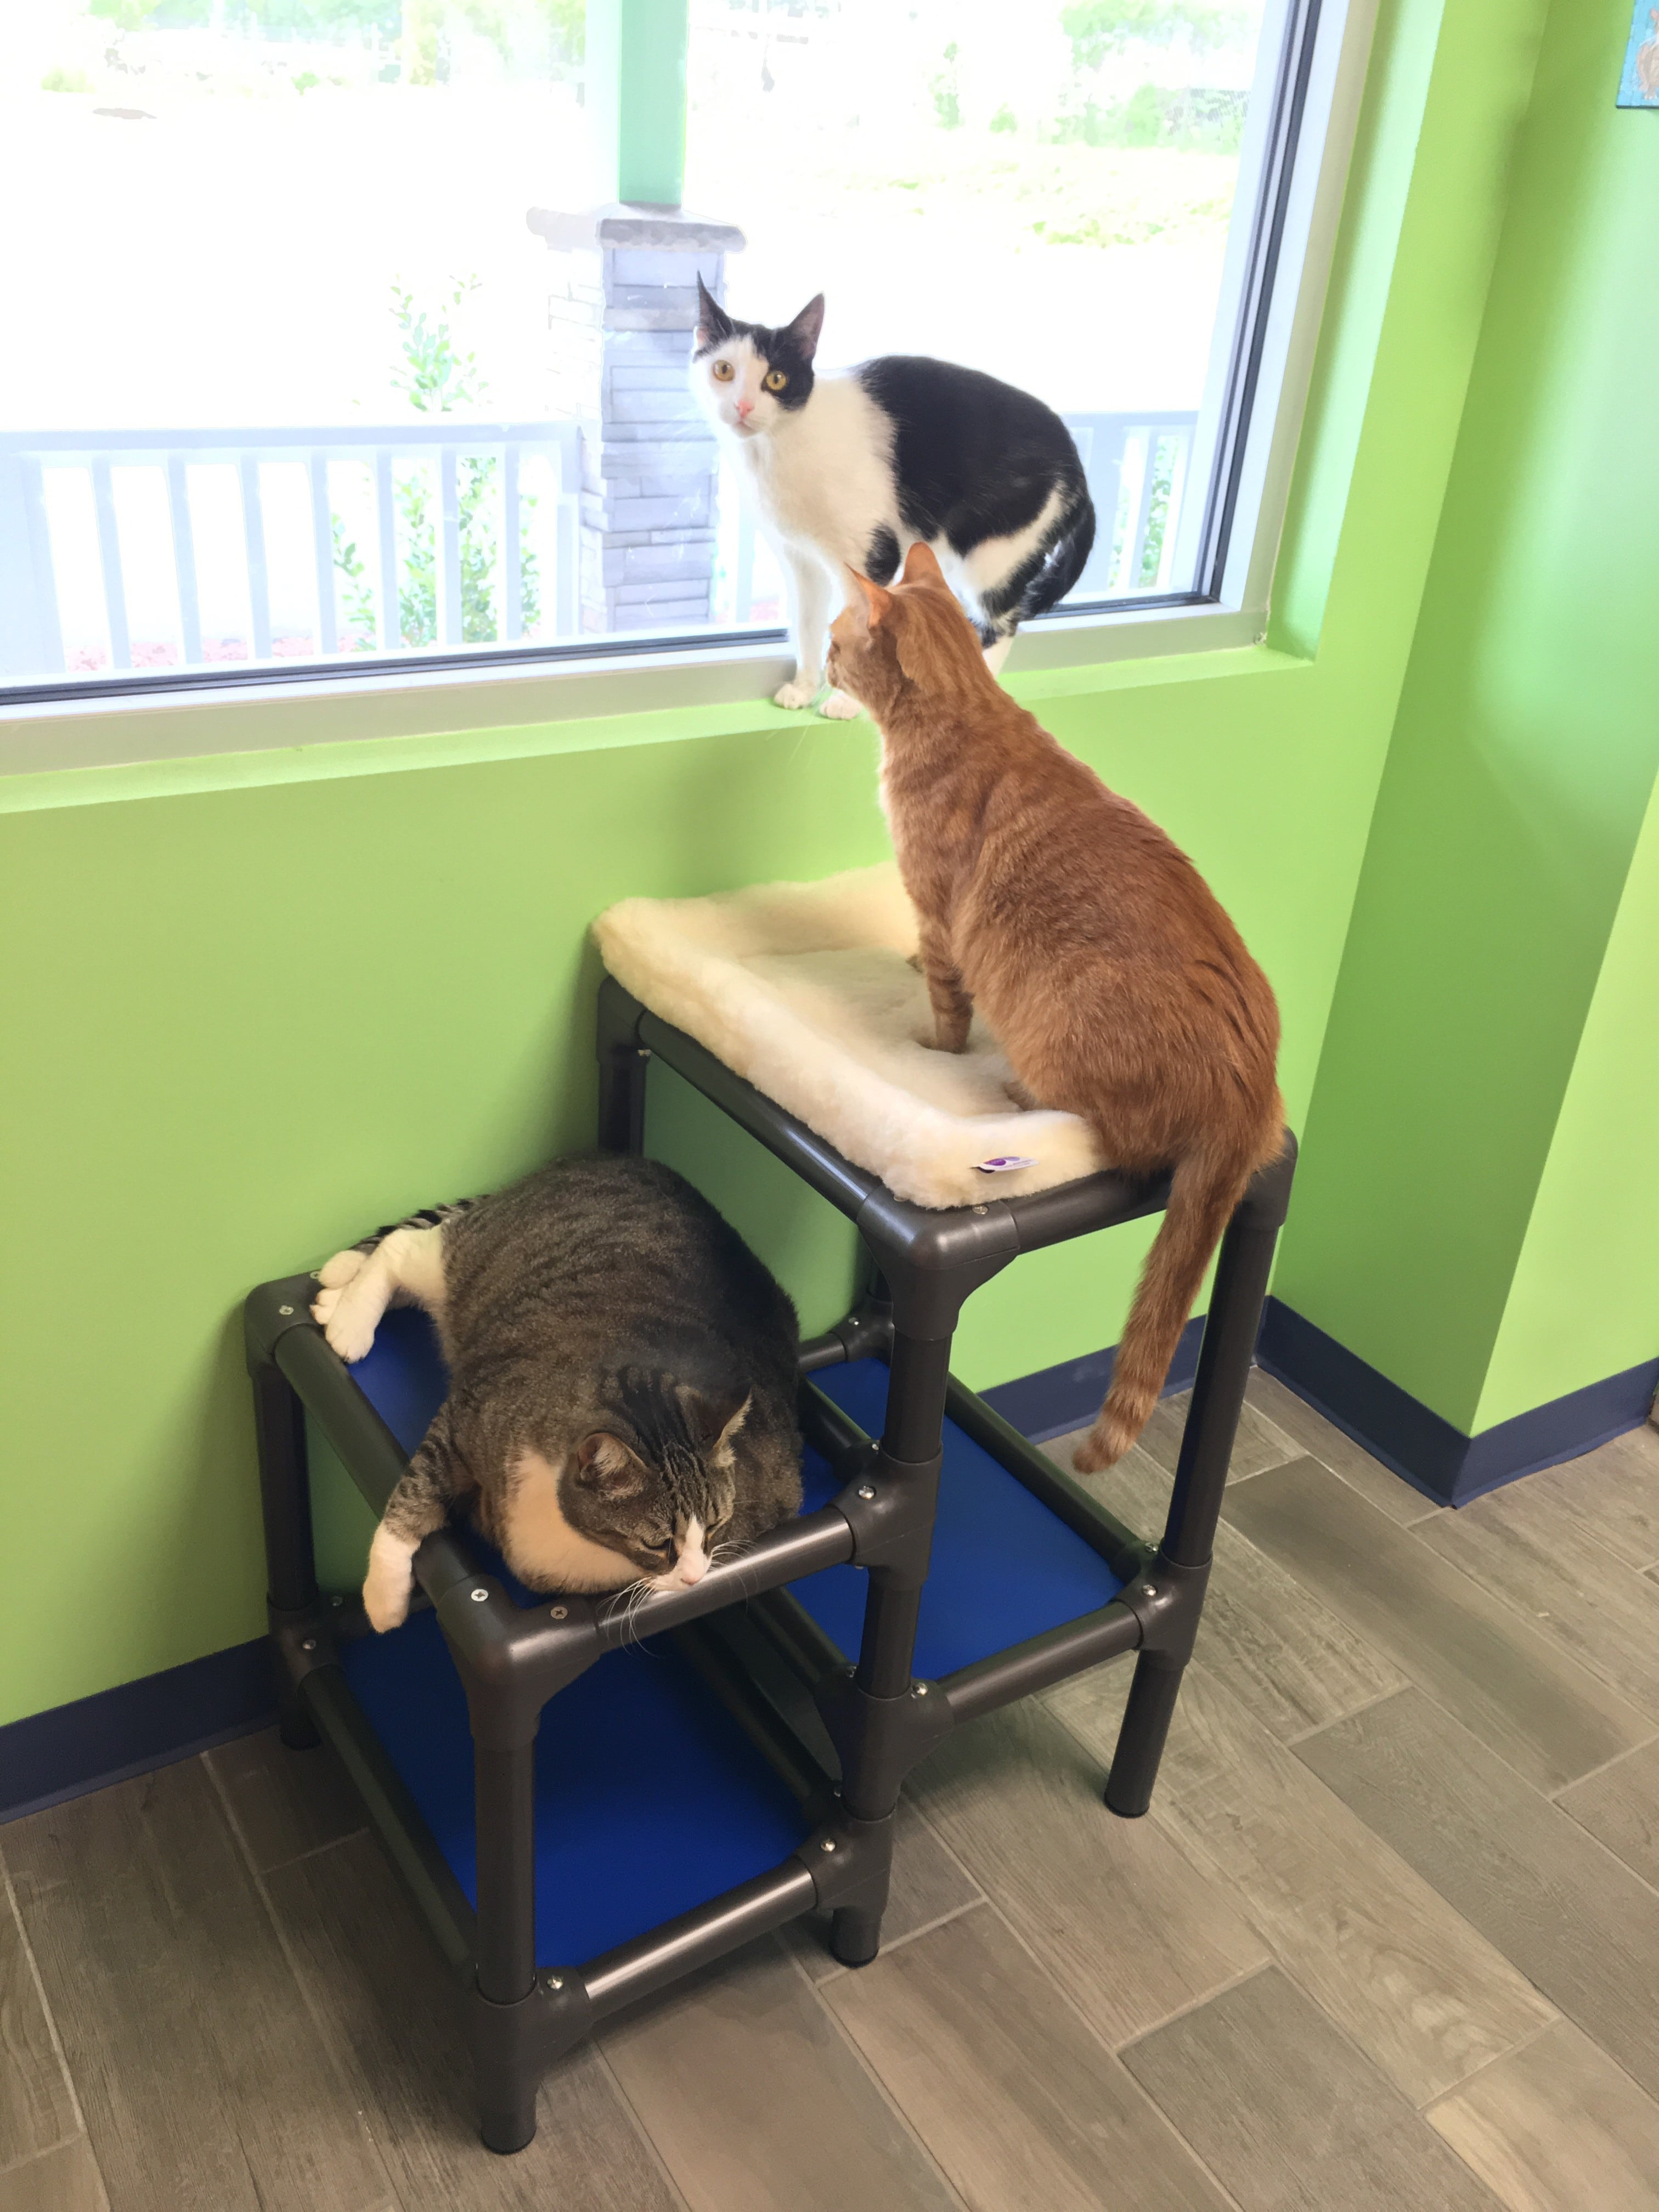 3 cats on play structure looking out window